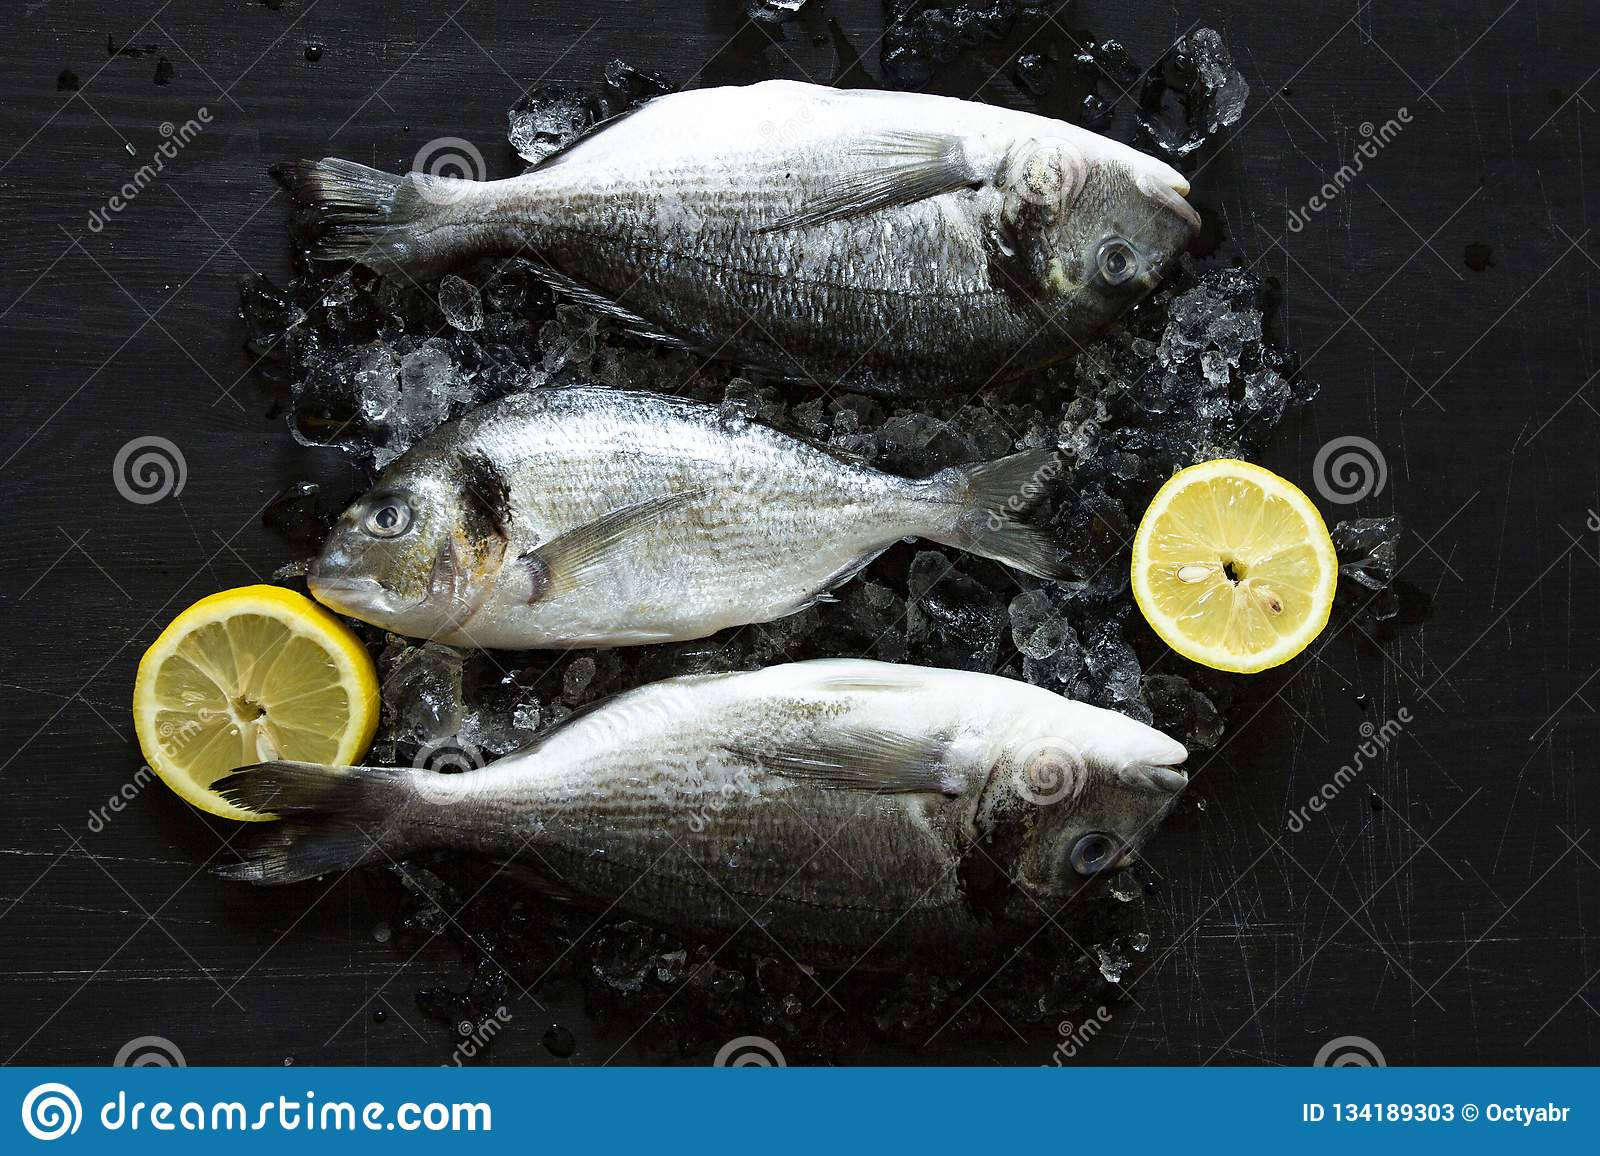 Fresh dorado or sea bream fish with lemon and ice wooden board over black background